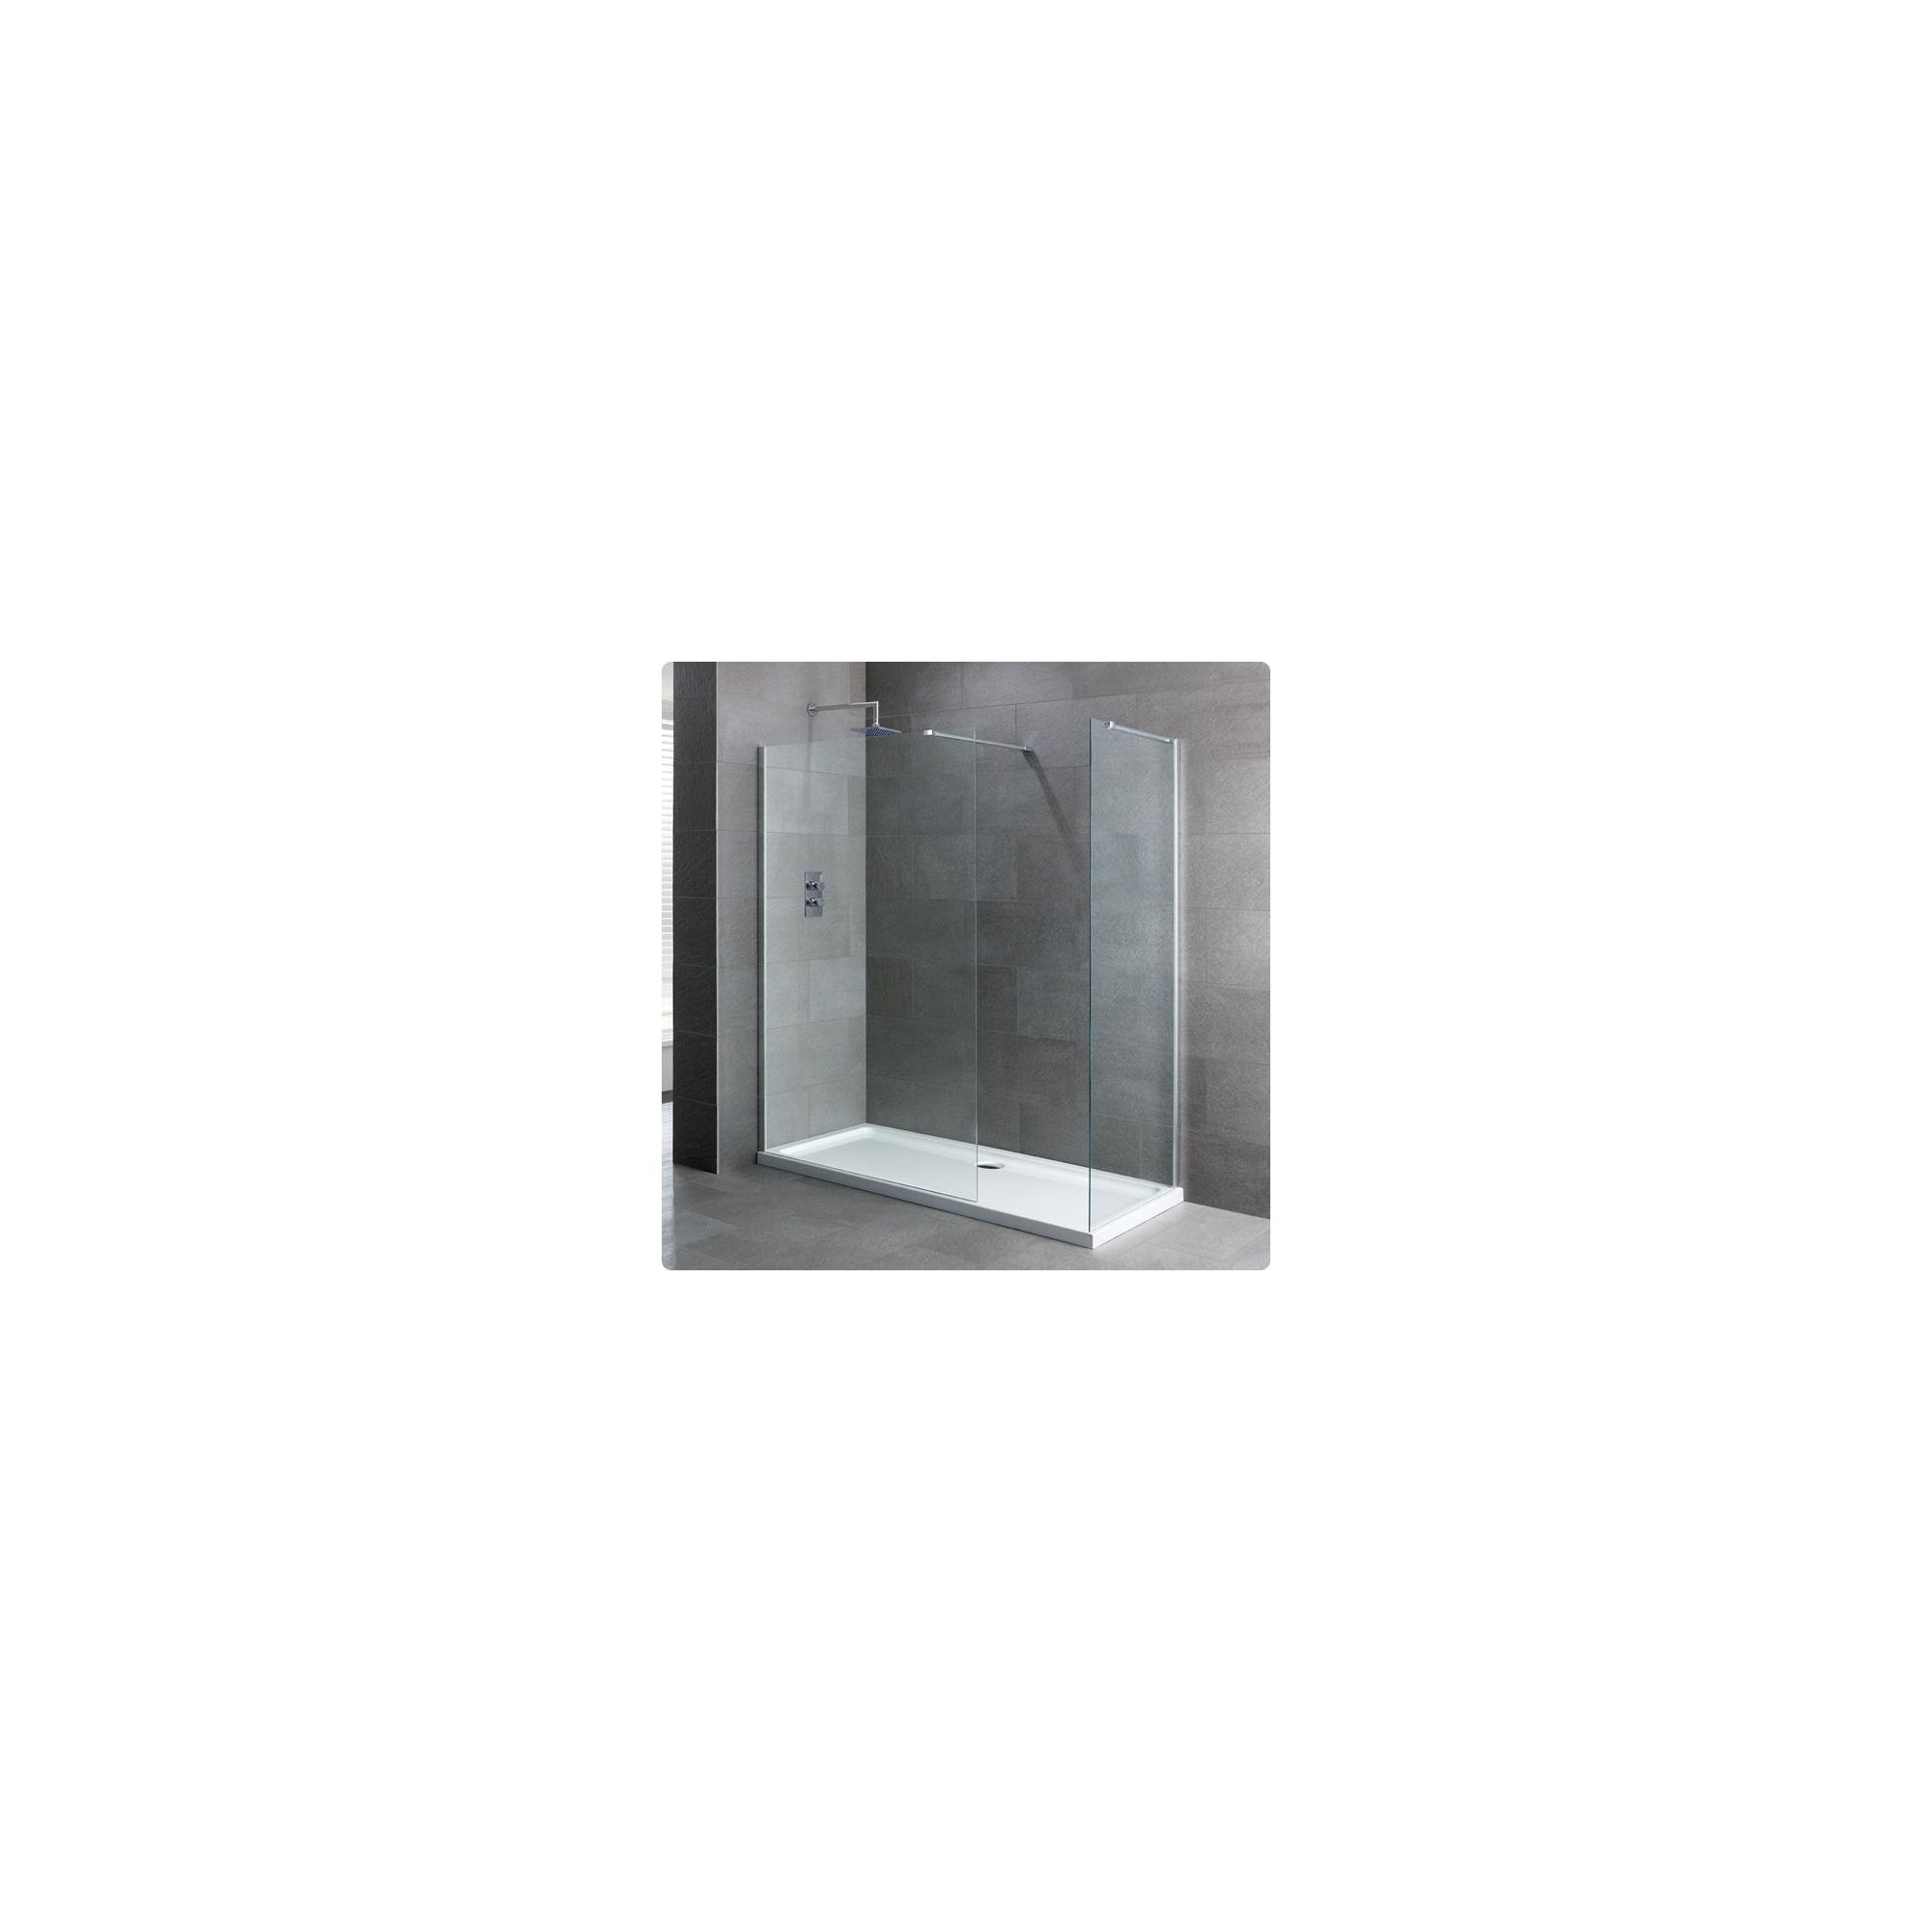 Duchy Select Silver Walk-In Shower Enclosure 1400mm x 760mm, Standard Tray, 6mm Glass at Tesco Direct